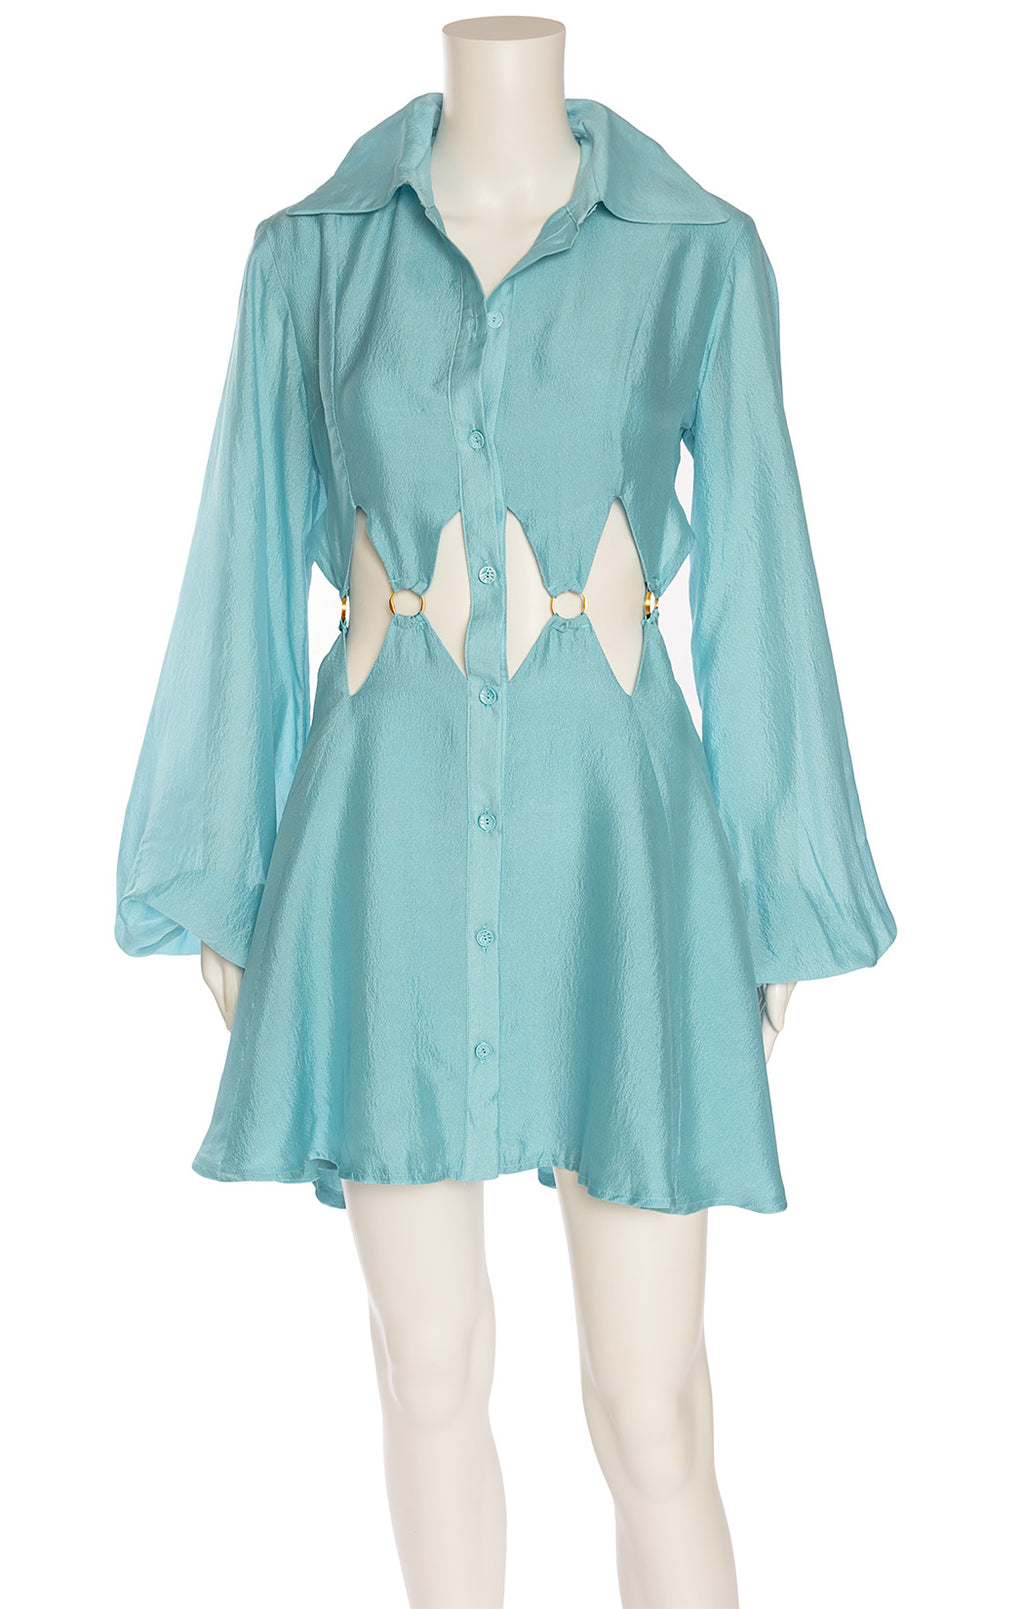 Blue long sleeve button down front closure dress with collar and open waist around dress with gold circles